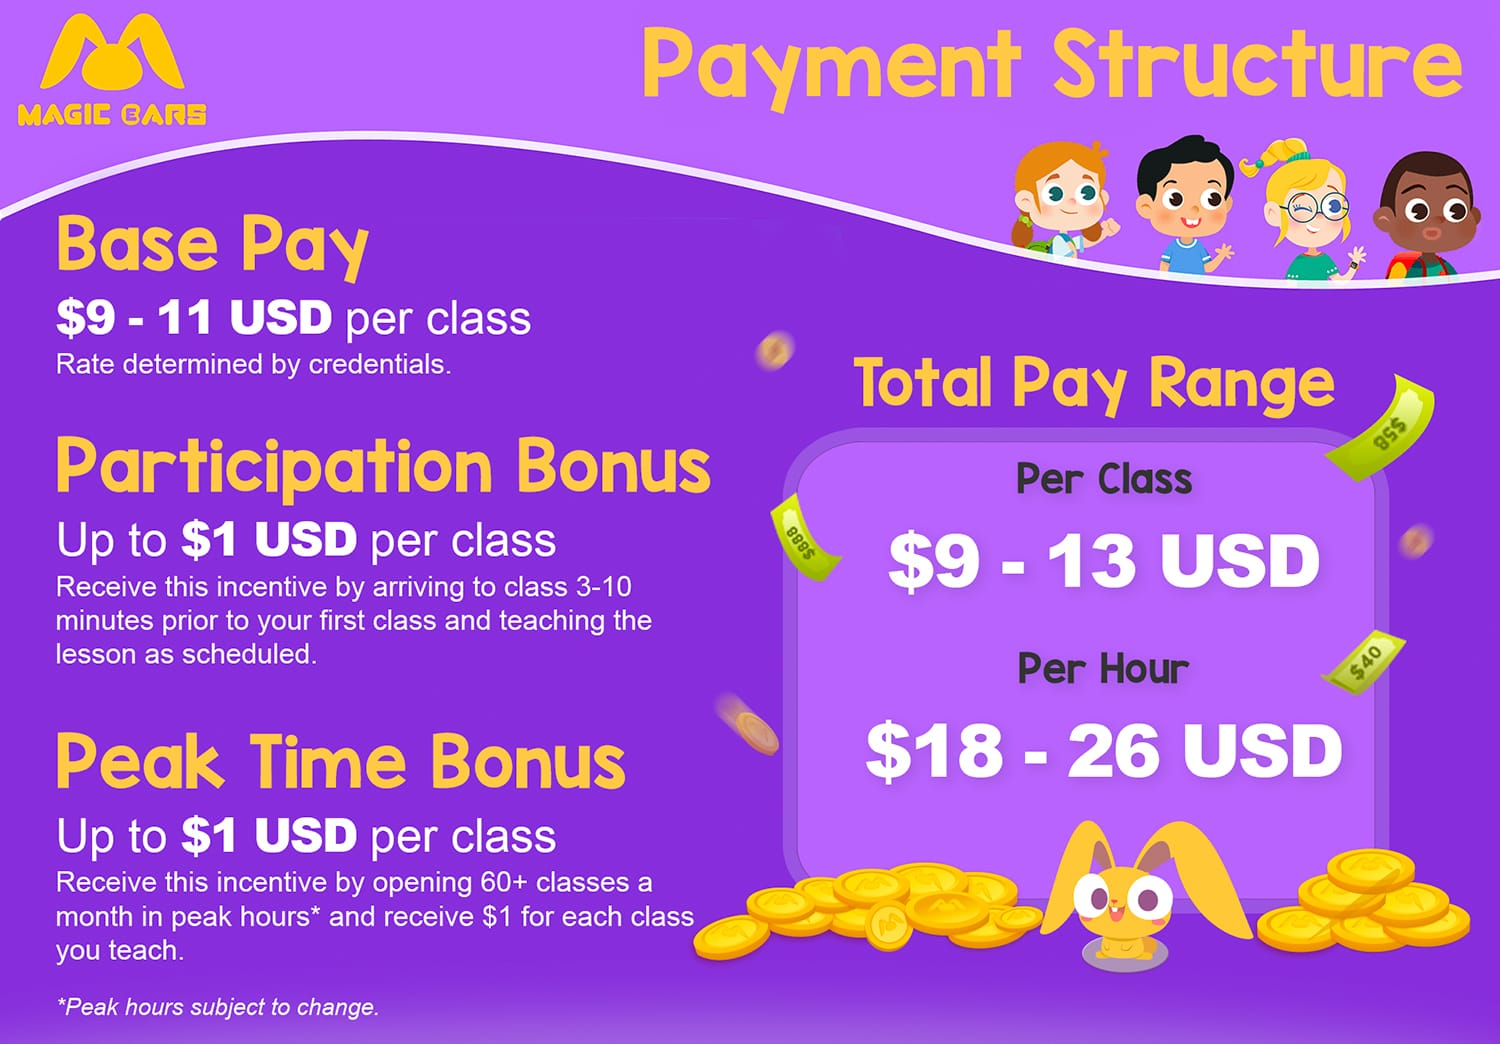 Magic Ears Payment Structure